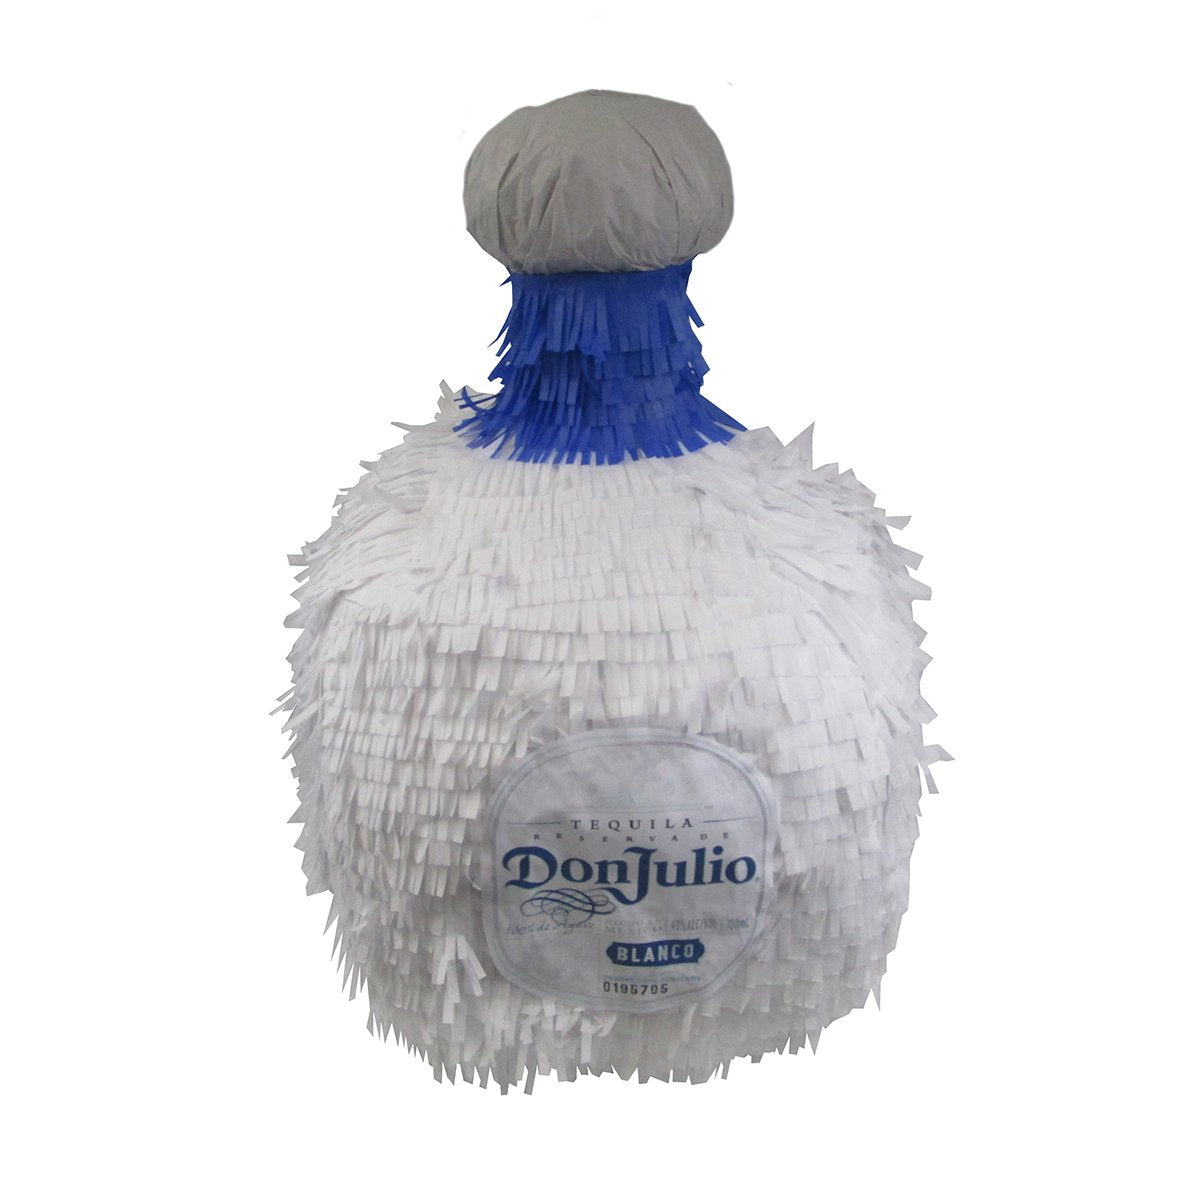 CUSTOM PROMOTIONAL PINATA - BOTTLE